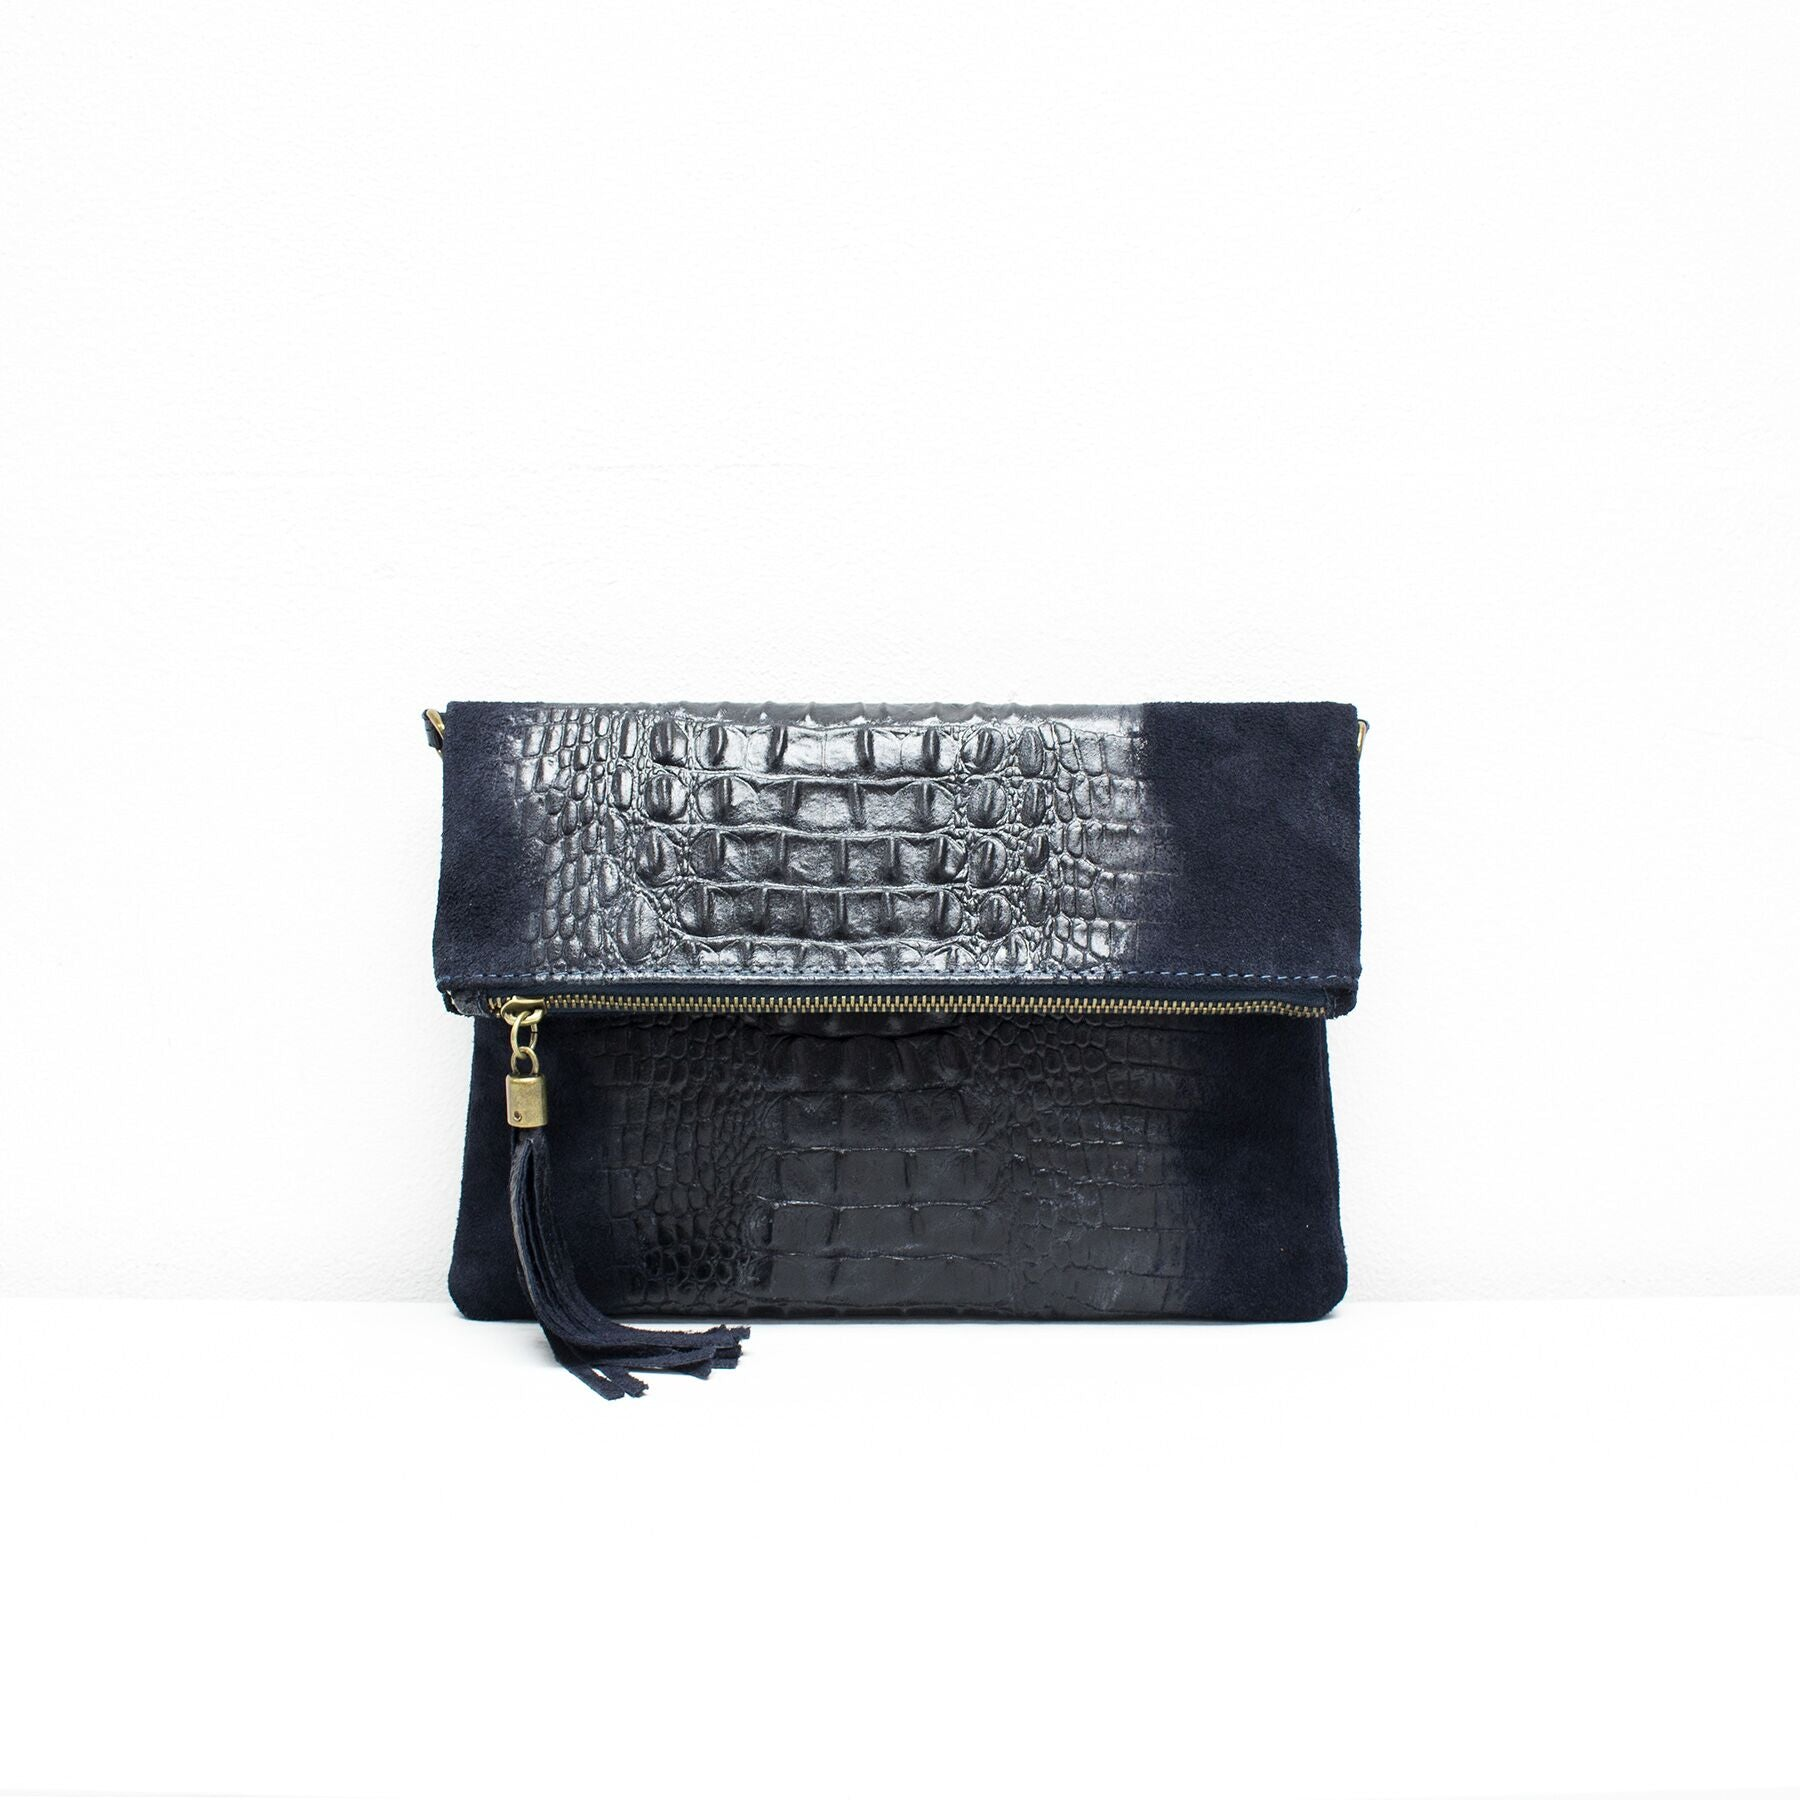 Croc Print Leather Clutch With Detachable Strap - Navy